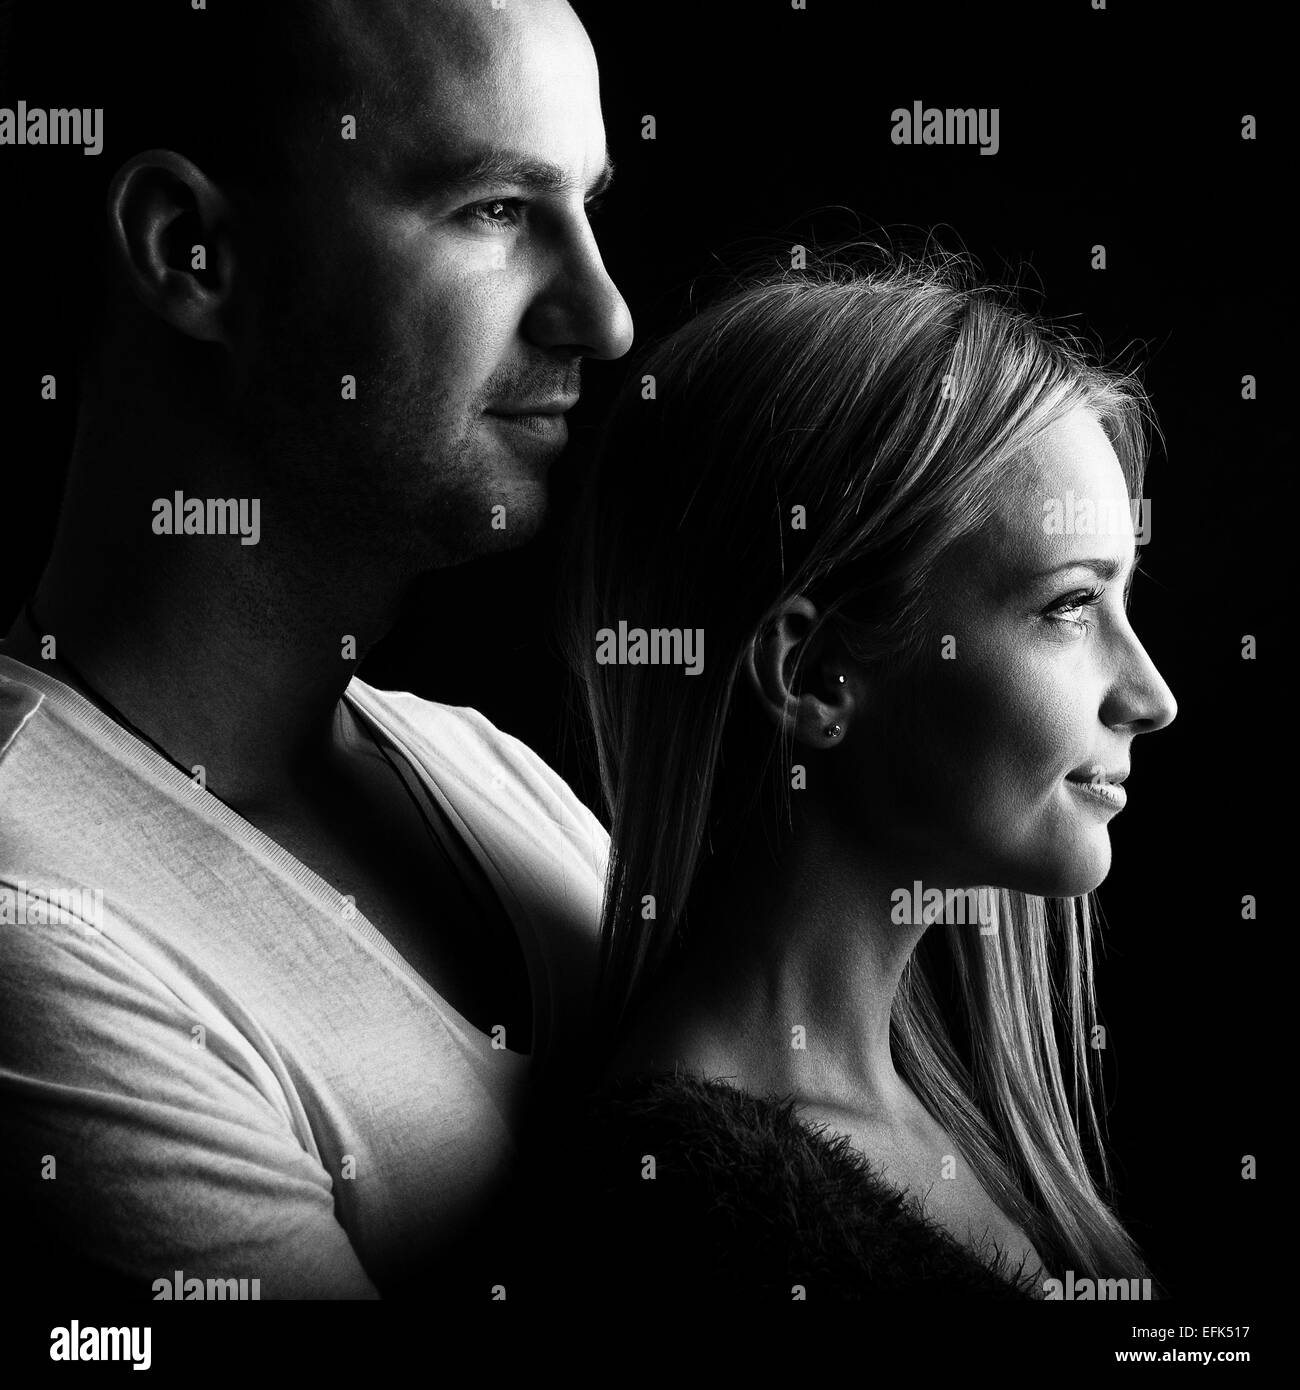 Loving couple black and white profile picture stock image